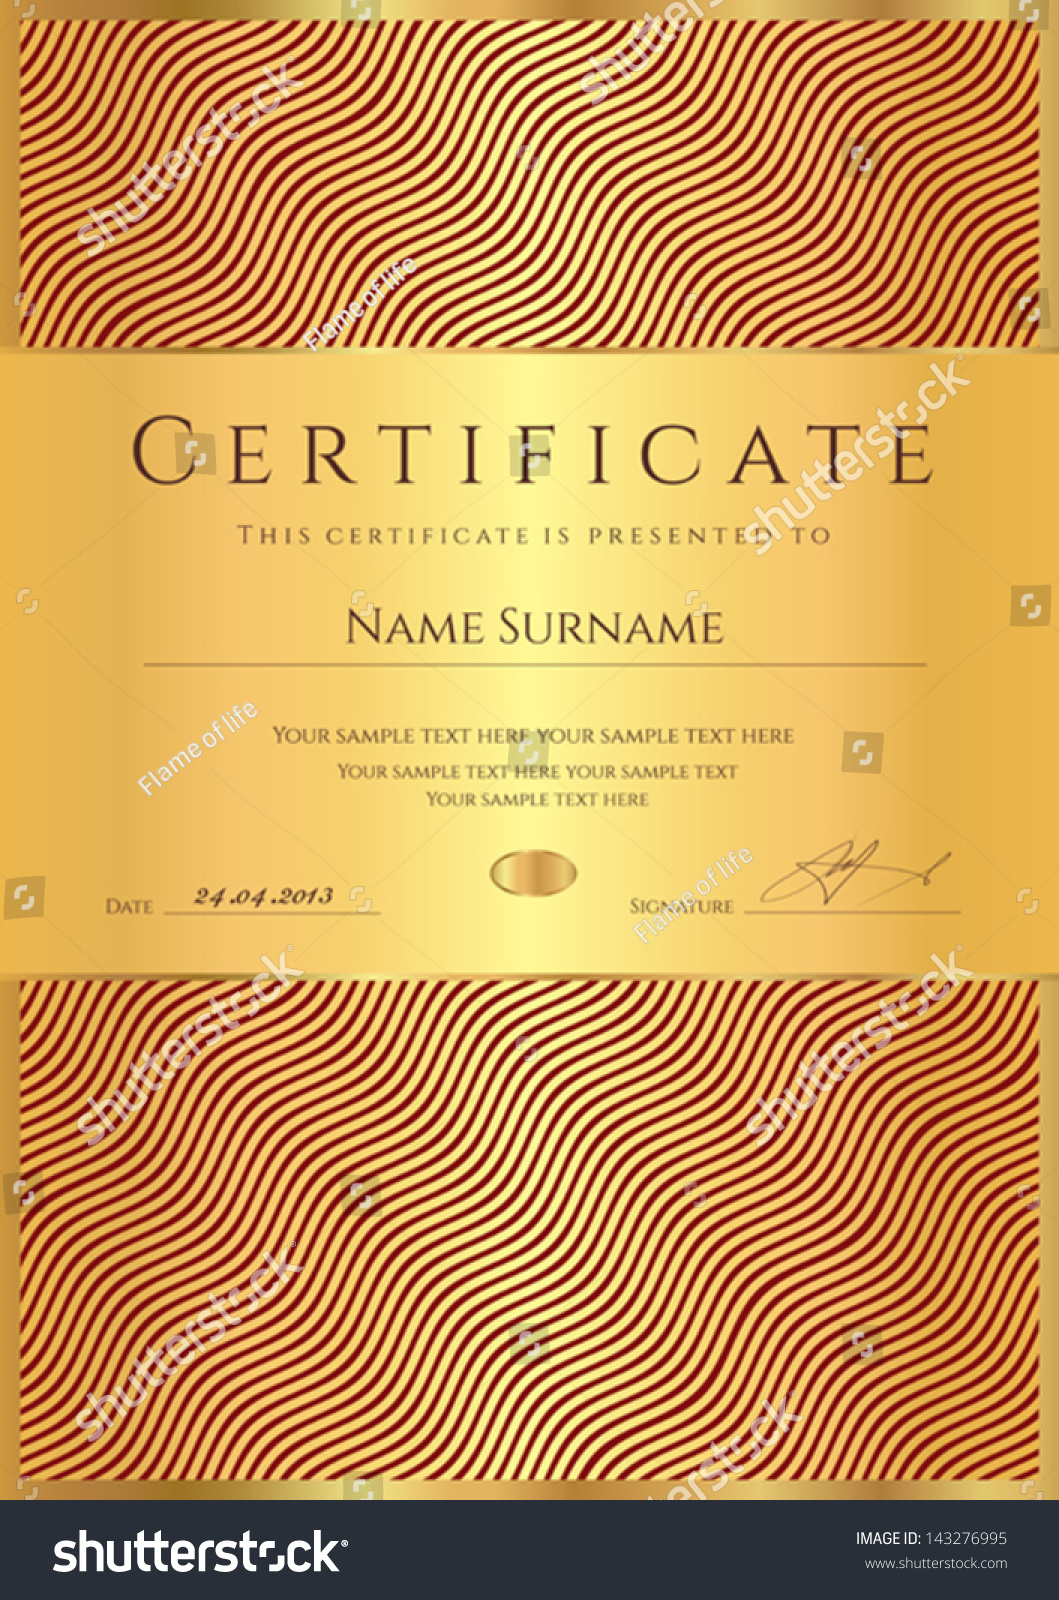 Certificate Of Completion (Template Or Sample Background) With Golden Wave  Lines Pattern. Gold